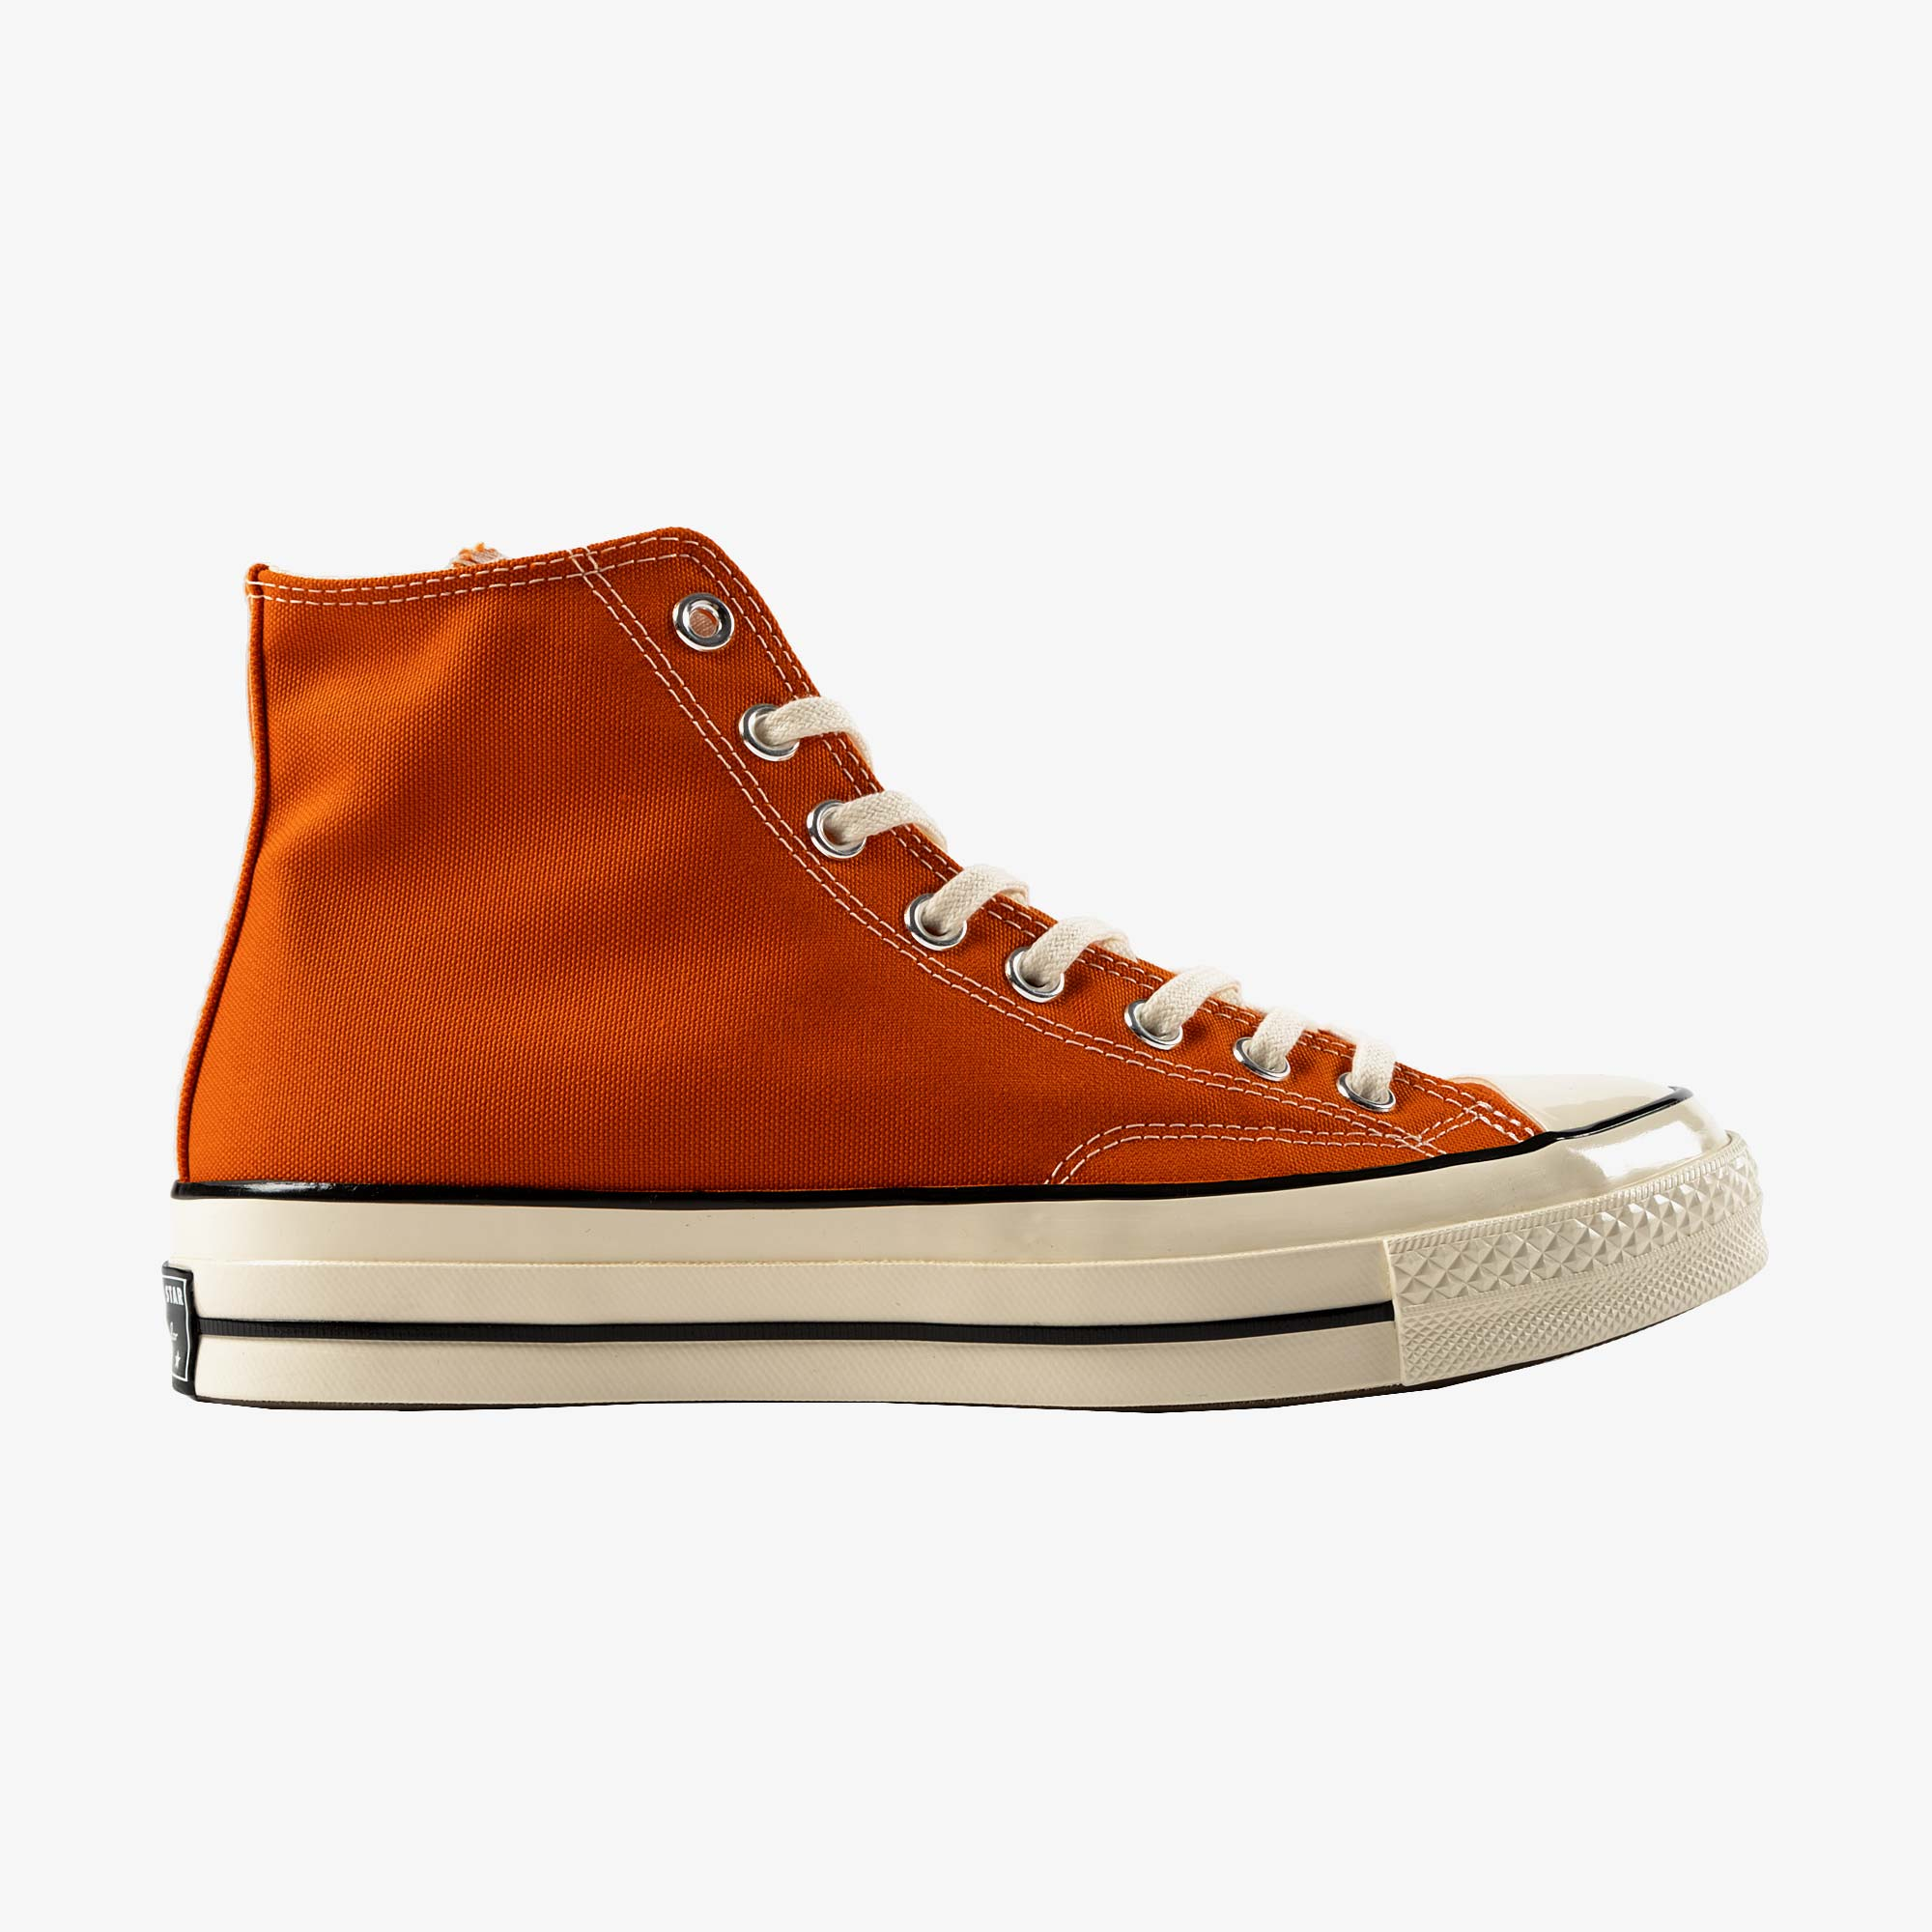 Converse Chuck Taylor Hi 70 Recycled Canvas - Fire Pit 4